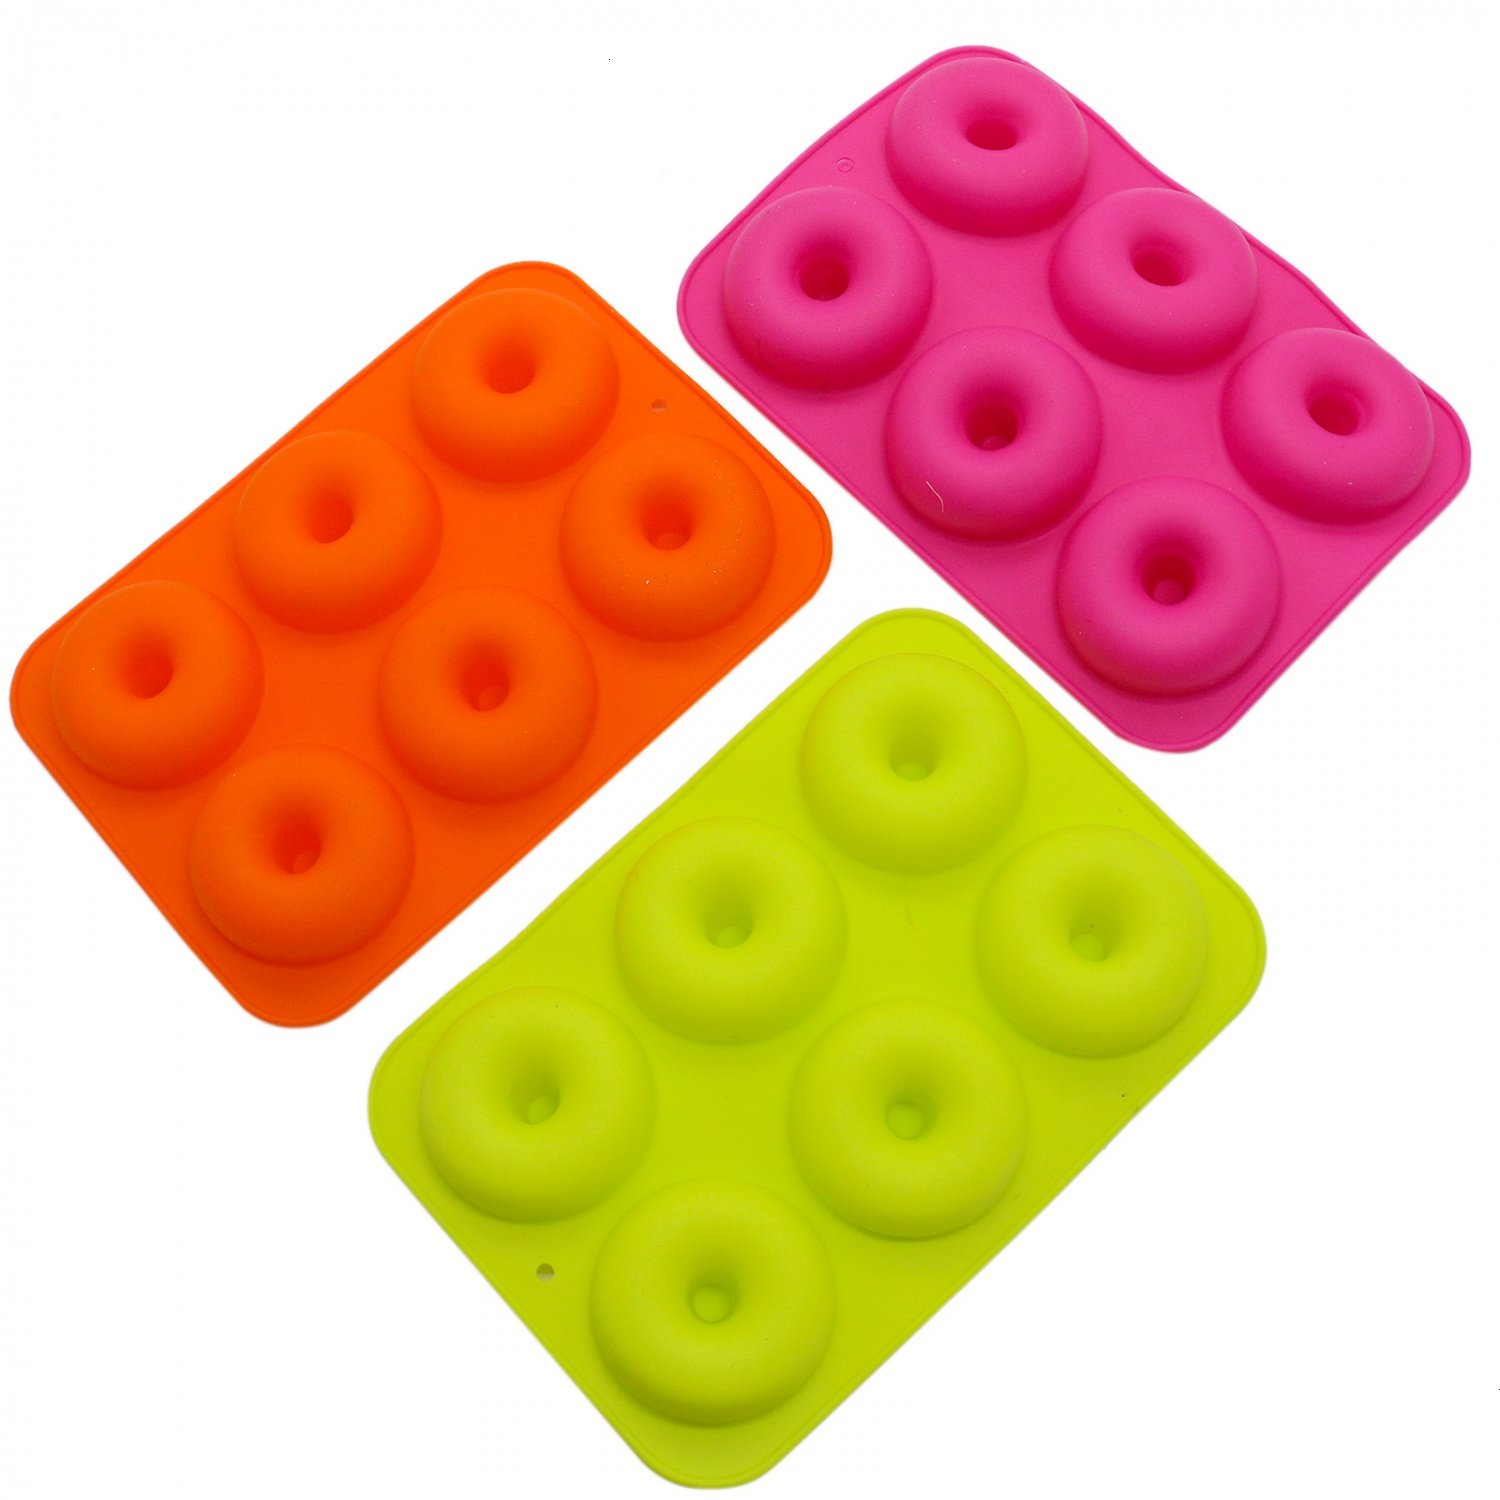 IDS Pack of 3 Silicone Donut Molds, 6 Cavity Non-Stick Safe Baking Tray Maker Pan Heat Resistance for Cake Biscuit Bagels